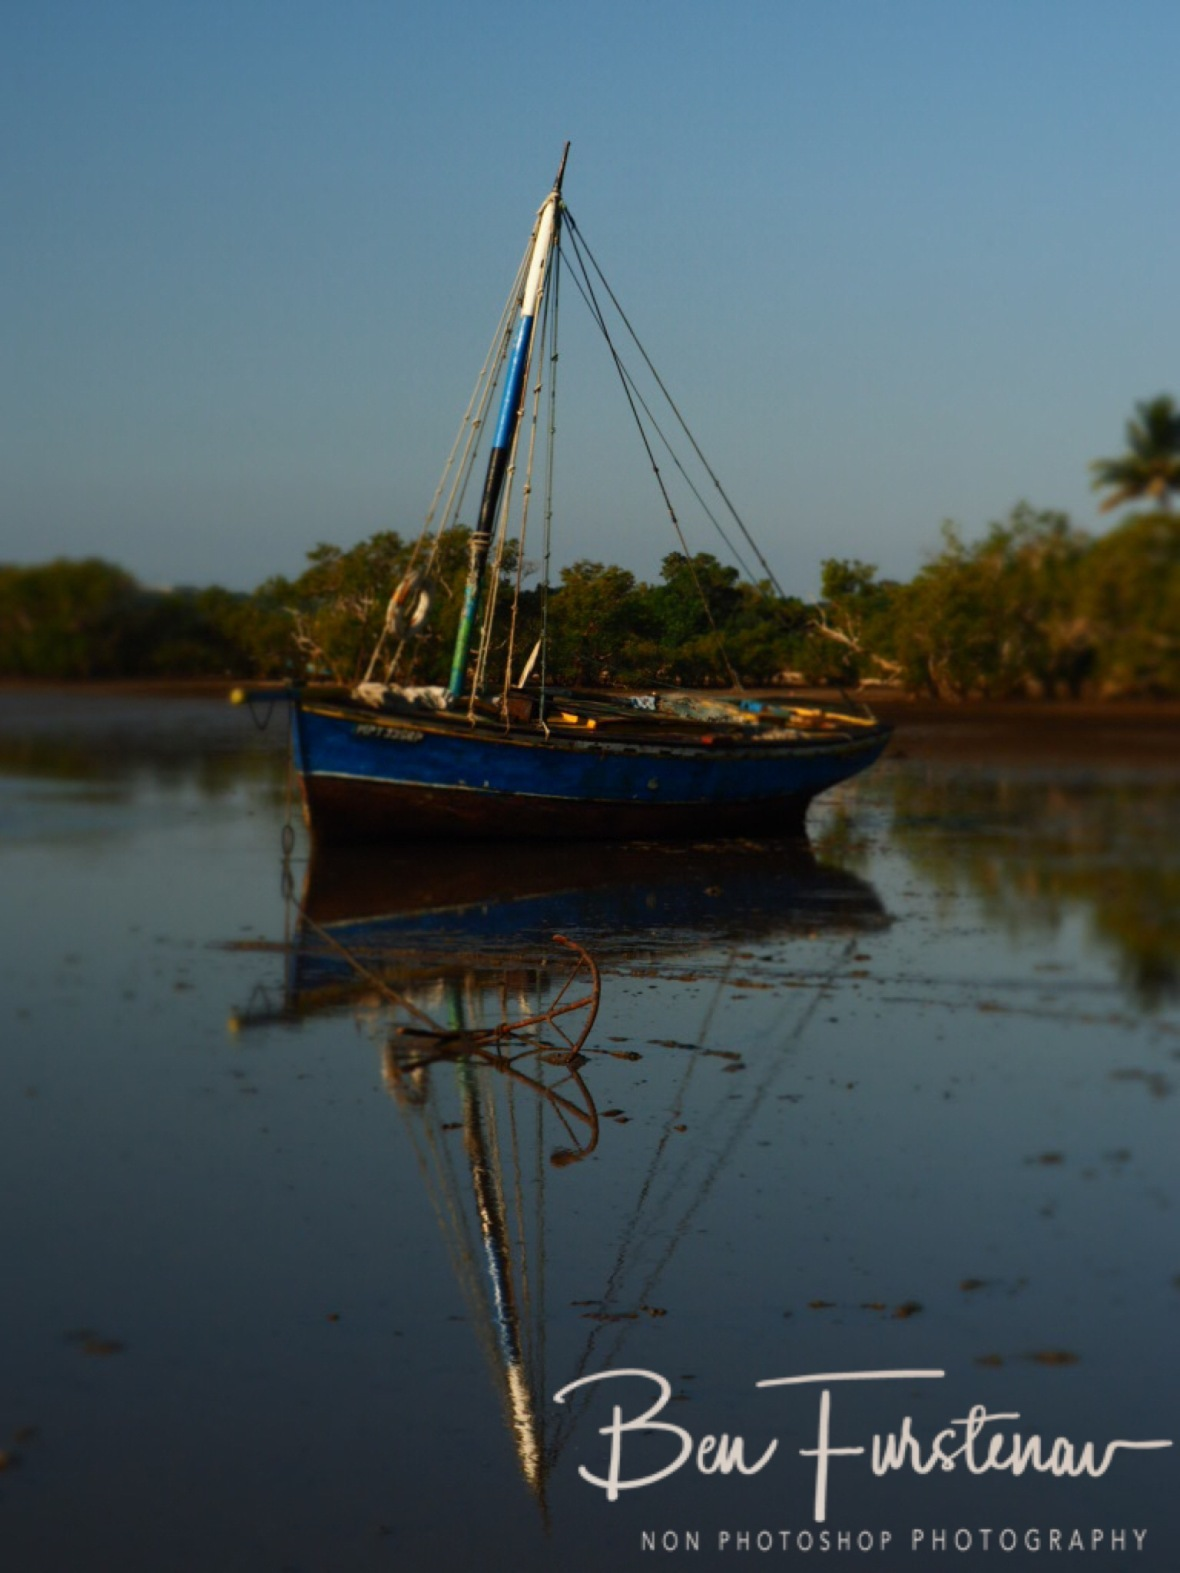 Dhow reflections at Santa Maria harbour, Santa Maria, Machangulo Peninsula